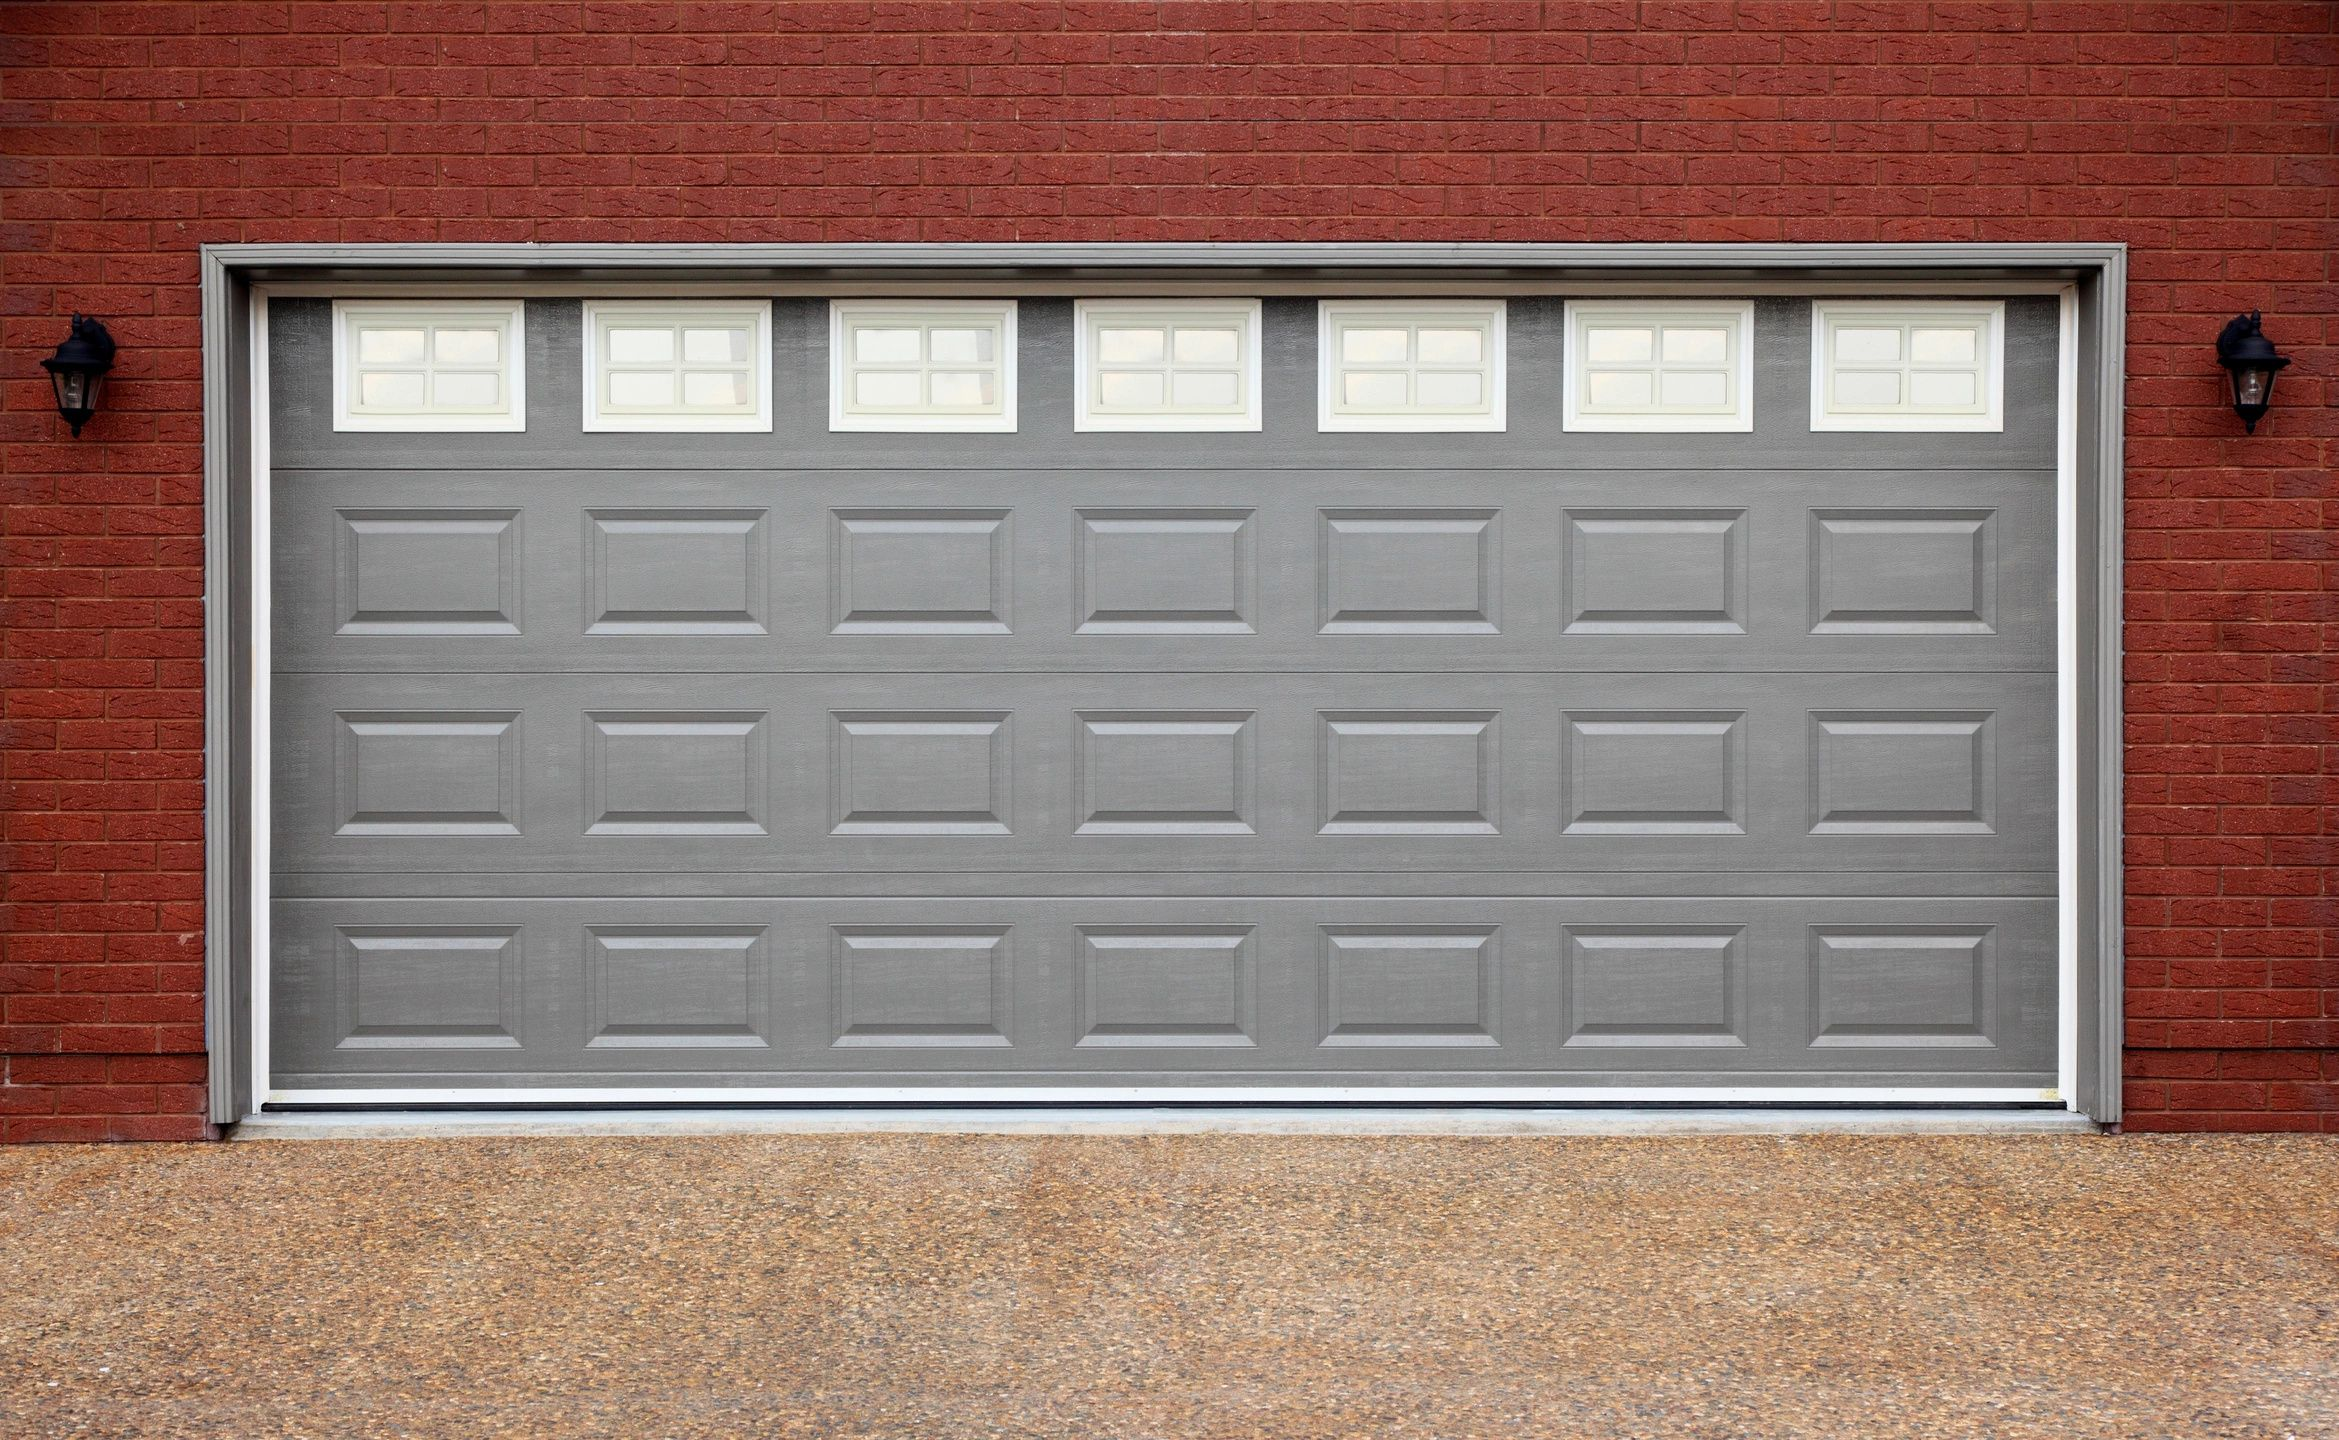 Garage Door Repair Yelp Garage Door Austin Emergency Repairs Installations Openers